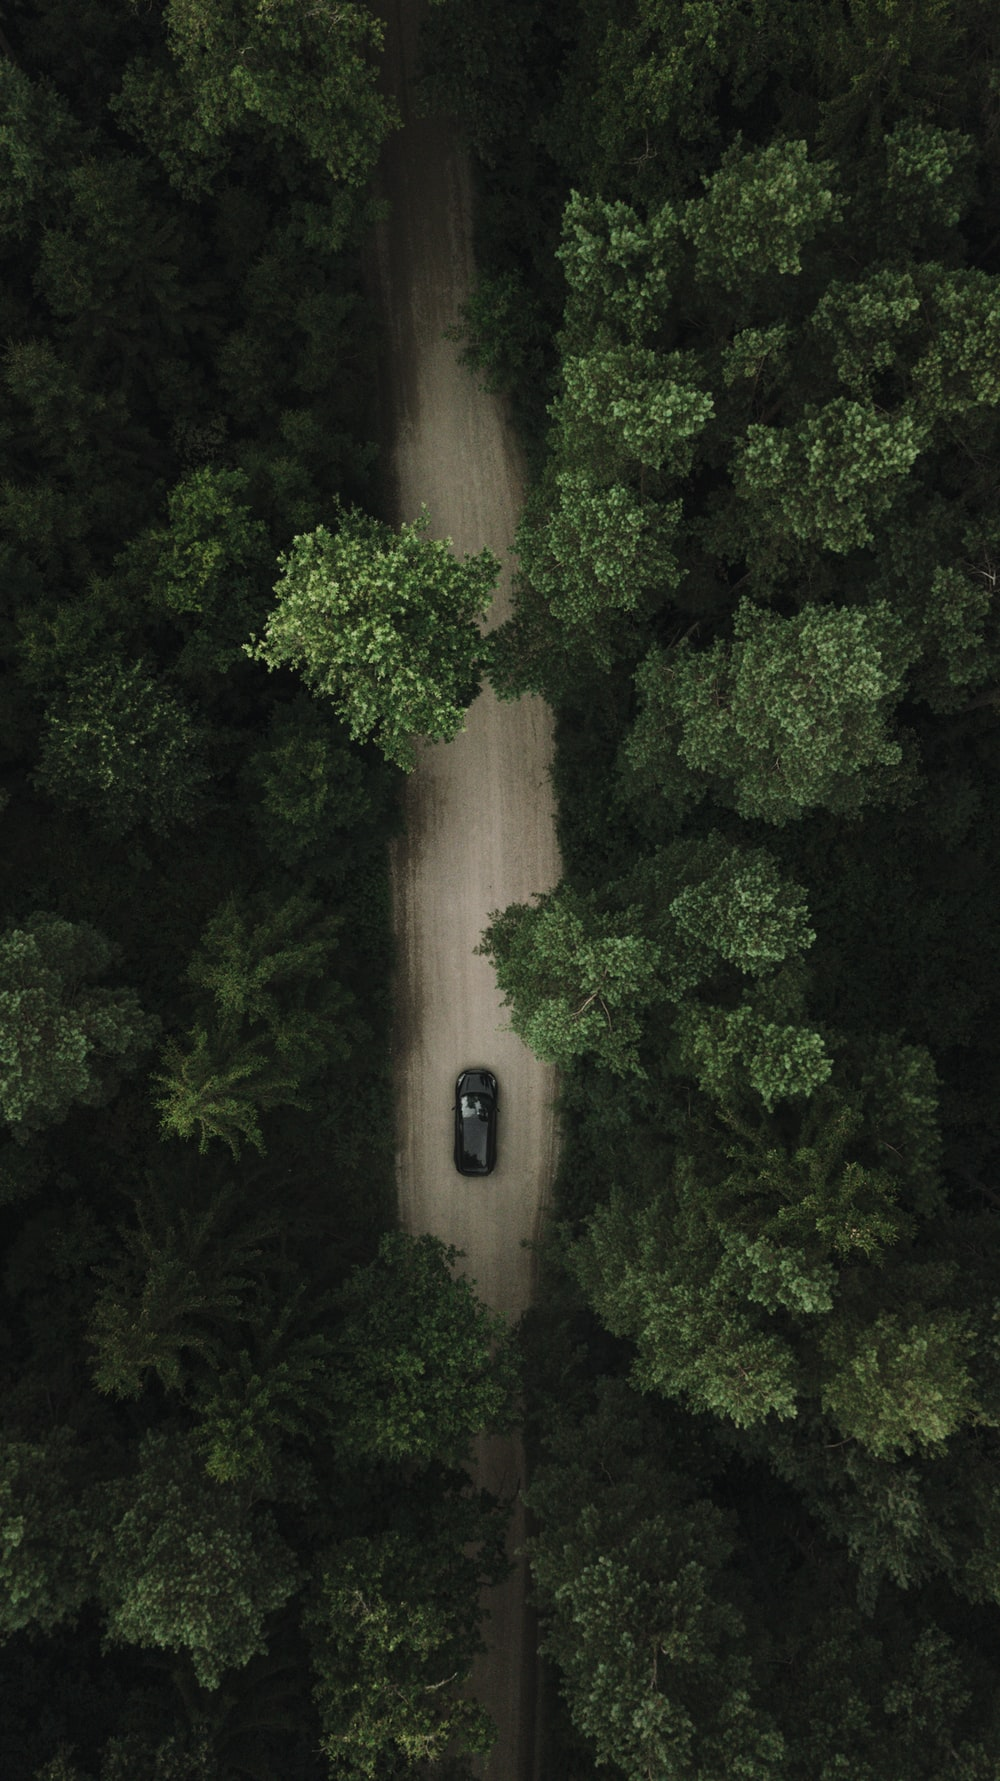 black car on road near green trees during daytime